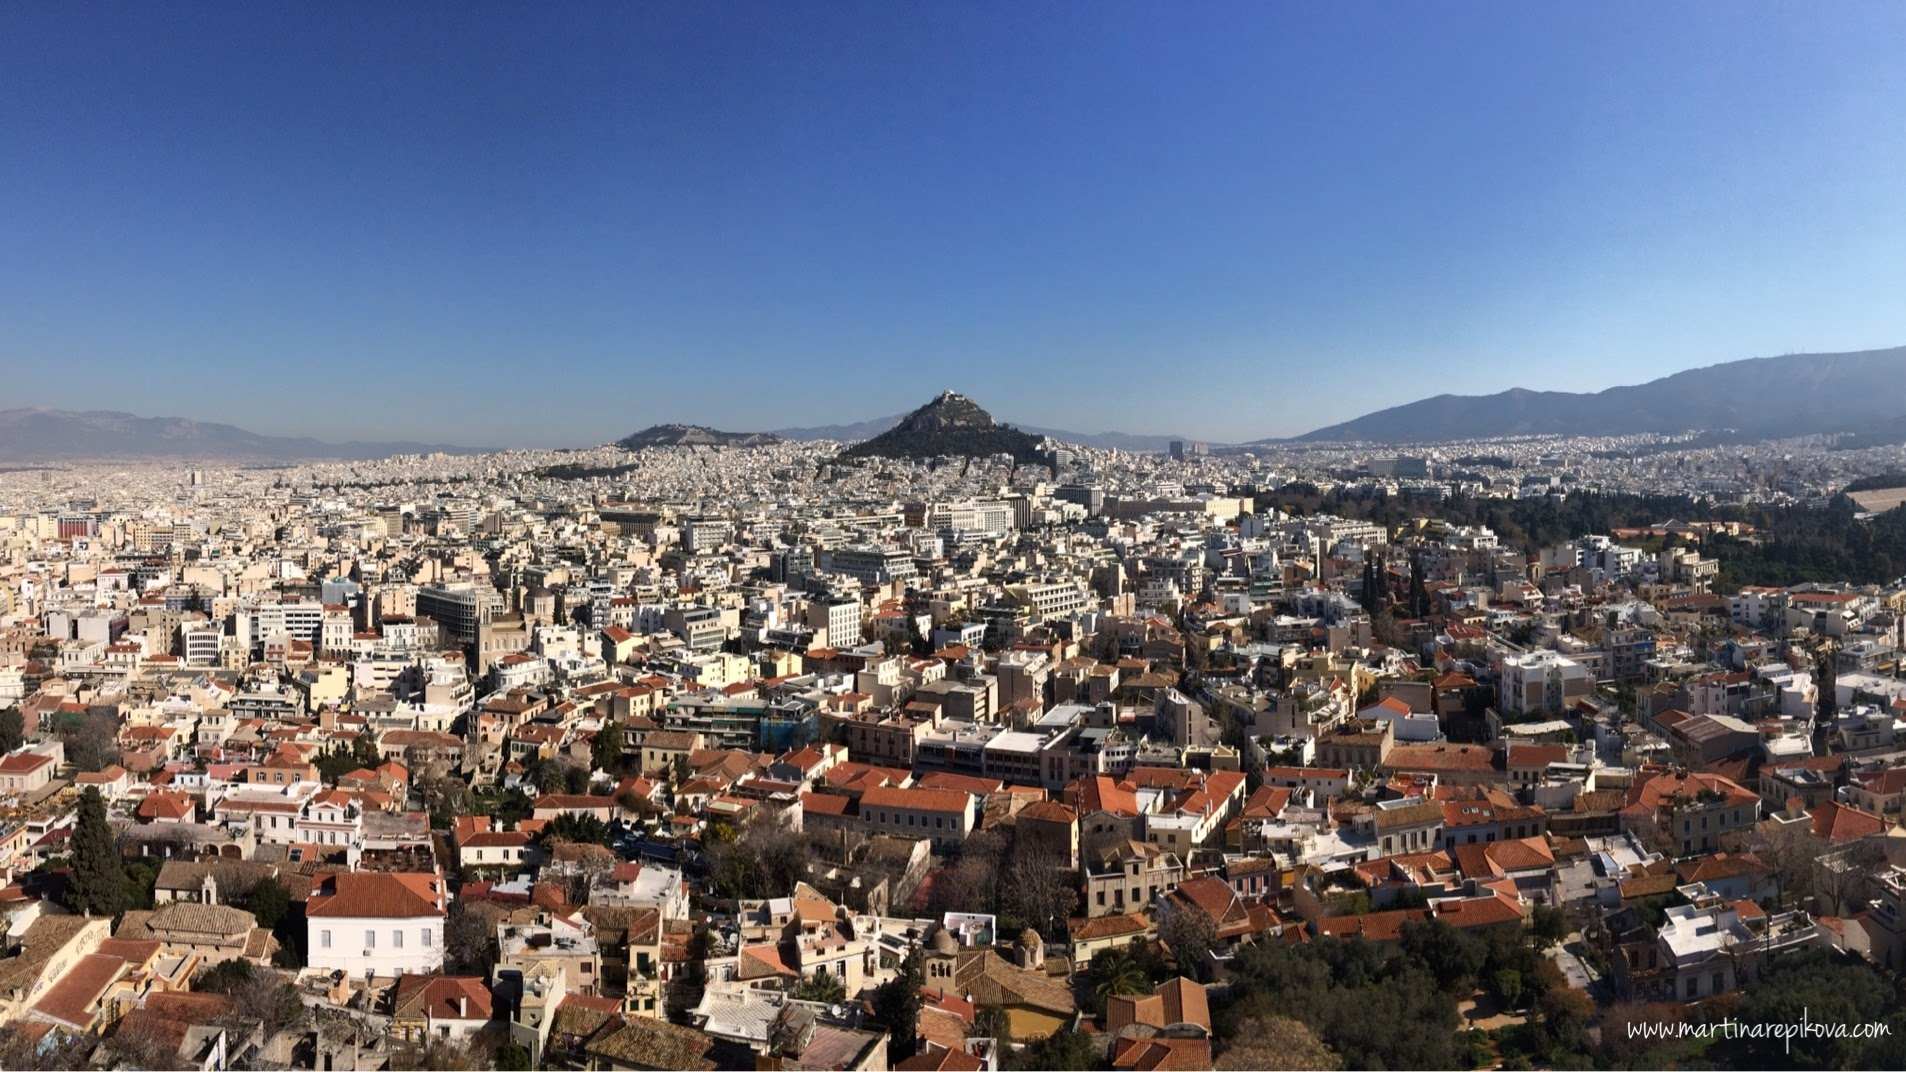 Lycabettus hills viewed from Acropolis, Athens, Greece